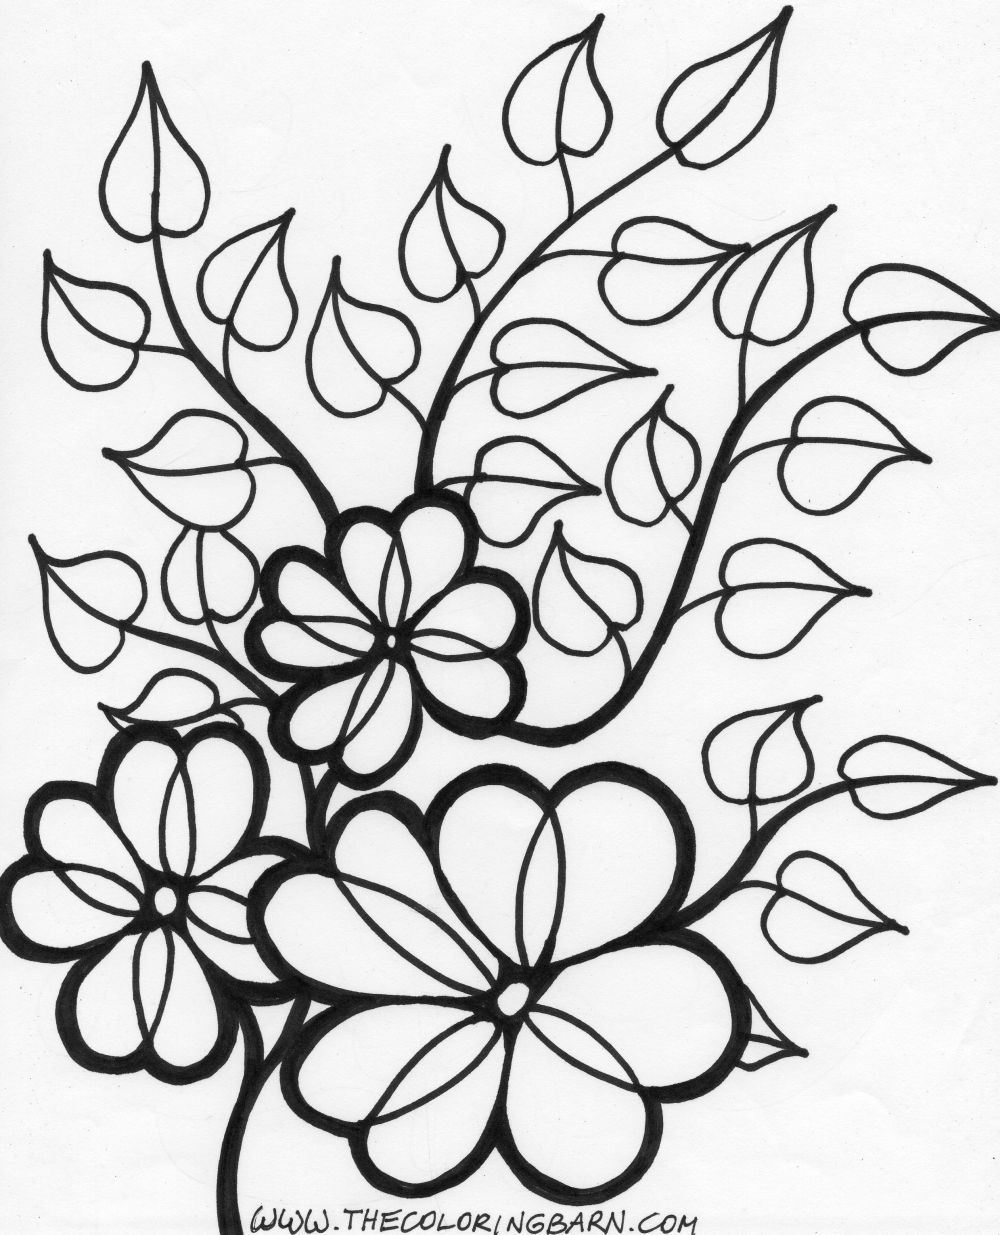 Colouring in sheets of flowers - Flower Vines Coloring Page Wild Printable Free Coloring Pages For Kids